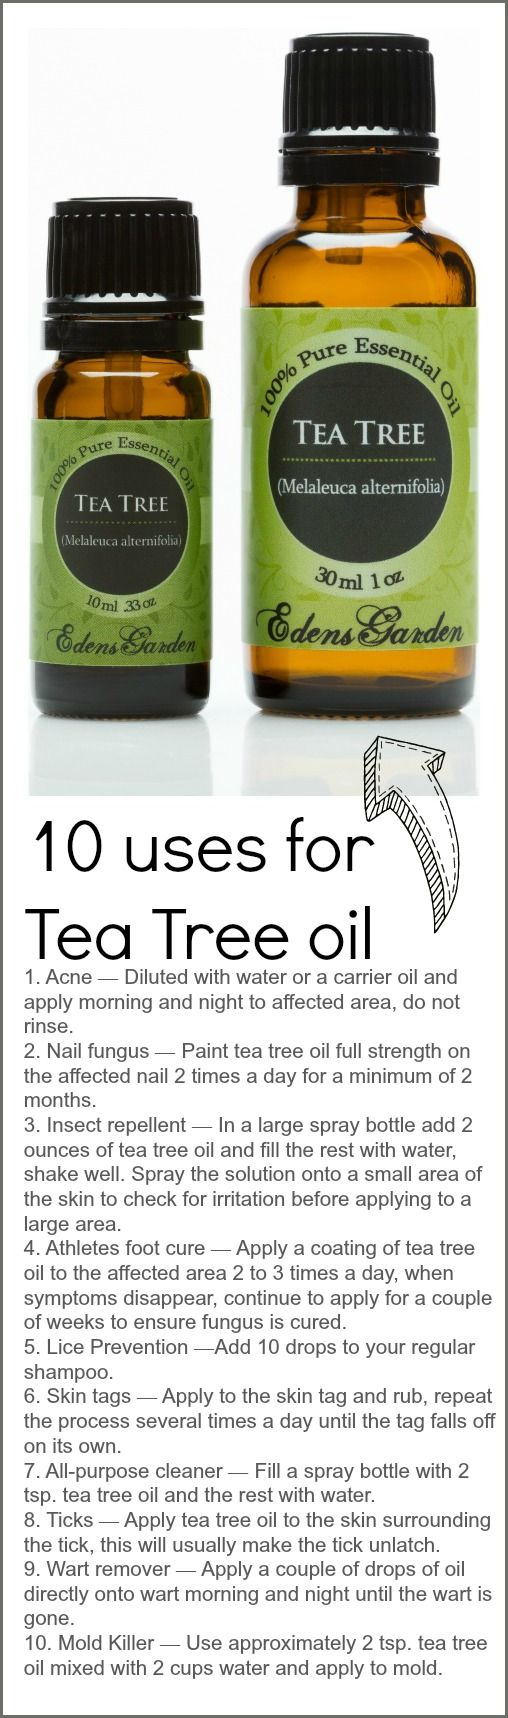 The earth is rich with natural healing power and there may be no better example of this than Tea Tree. It purifies as it heals and is a must for any home medicine cabinet or first-aid kit. Discovered